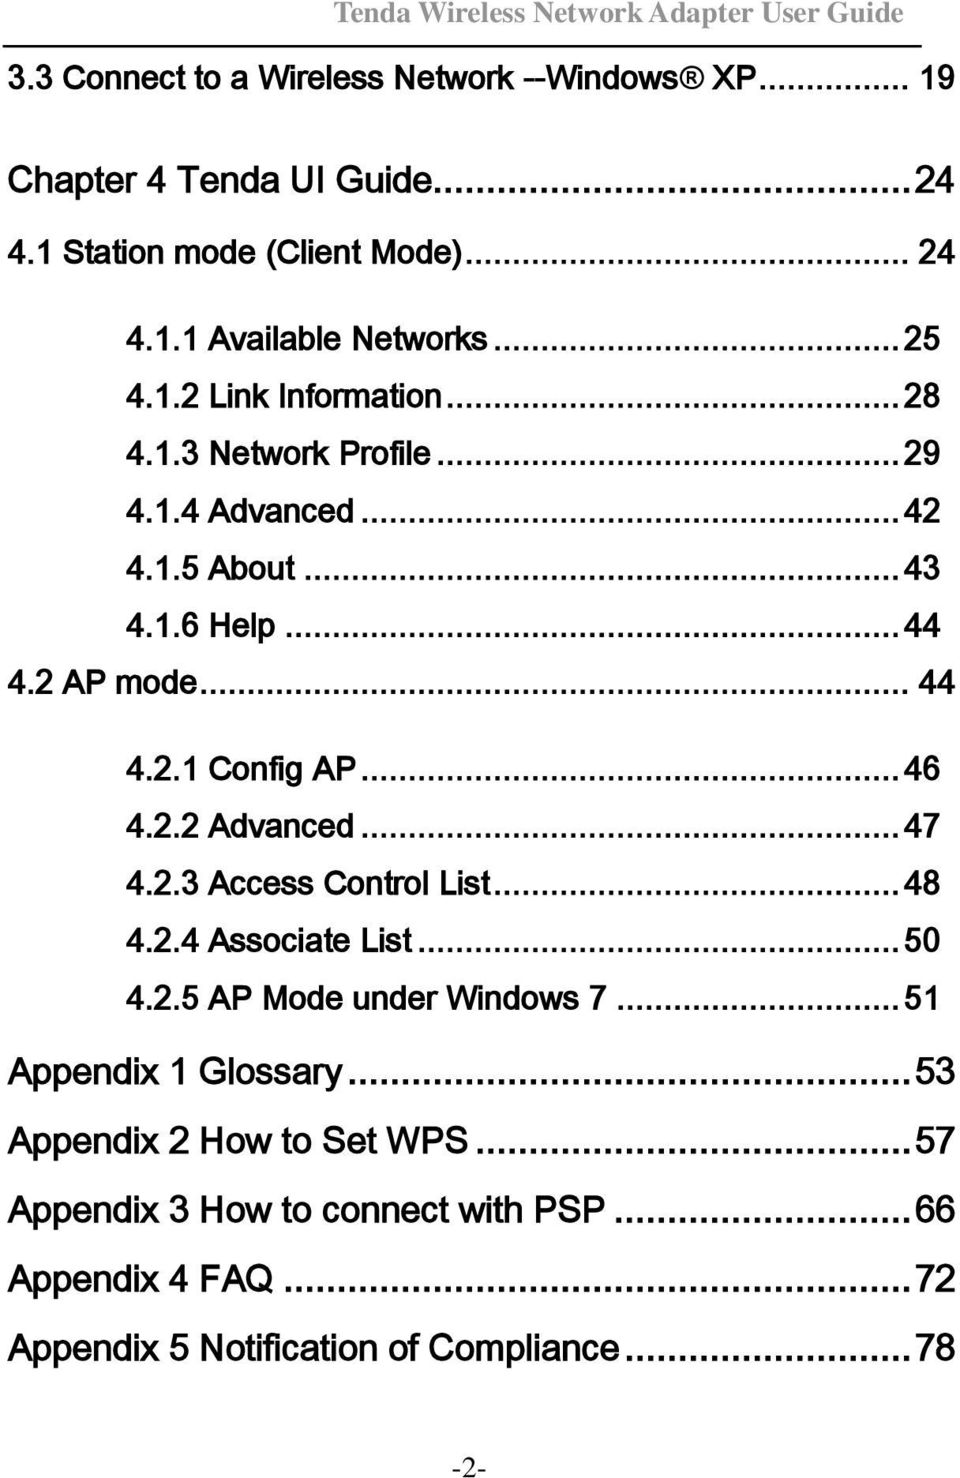 Tenda Wireless Network Adapter User Guide - PDF